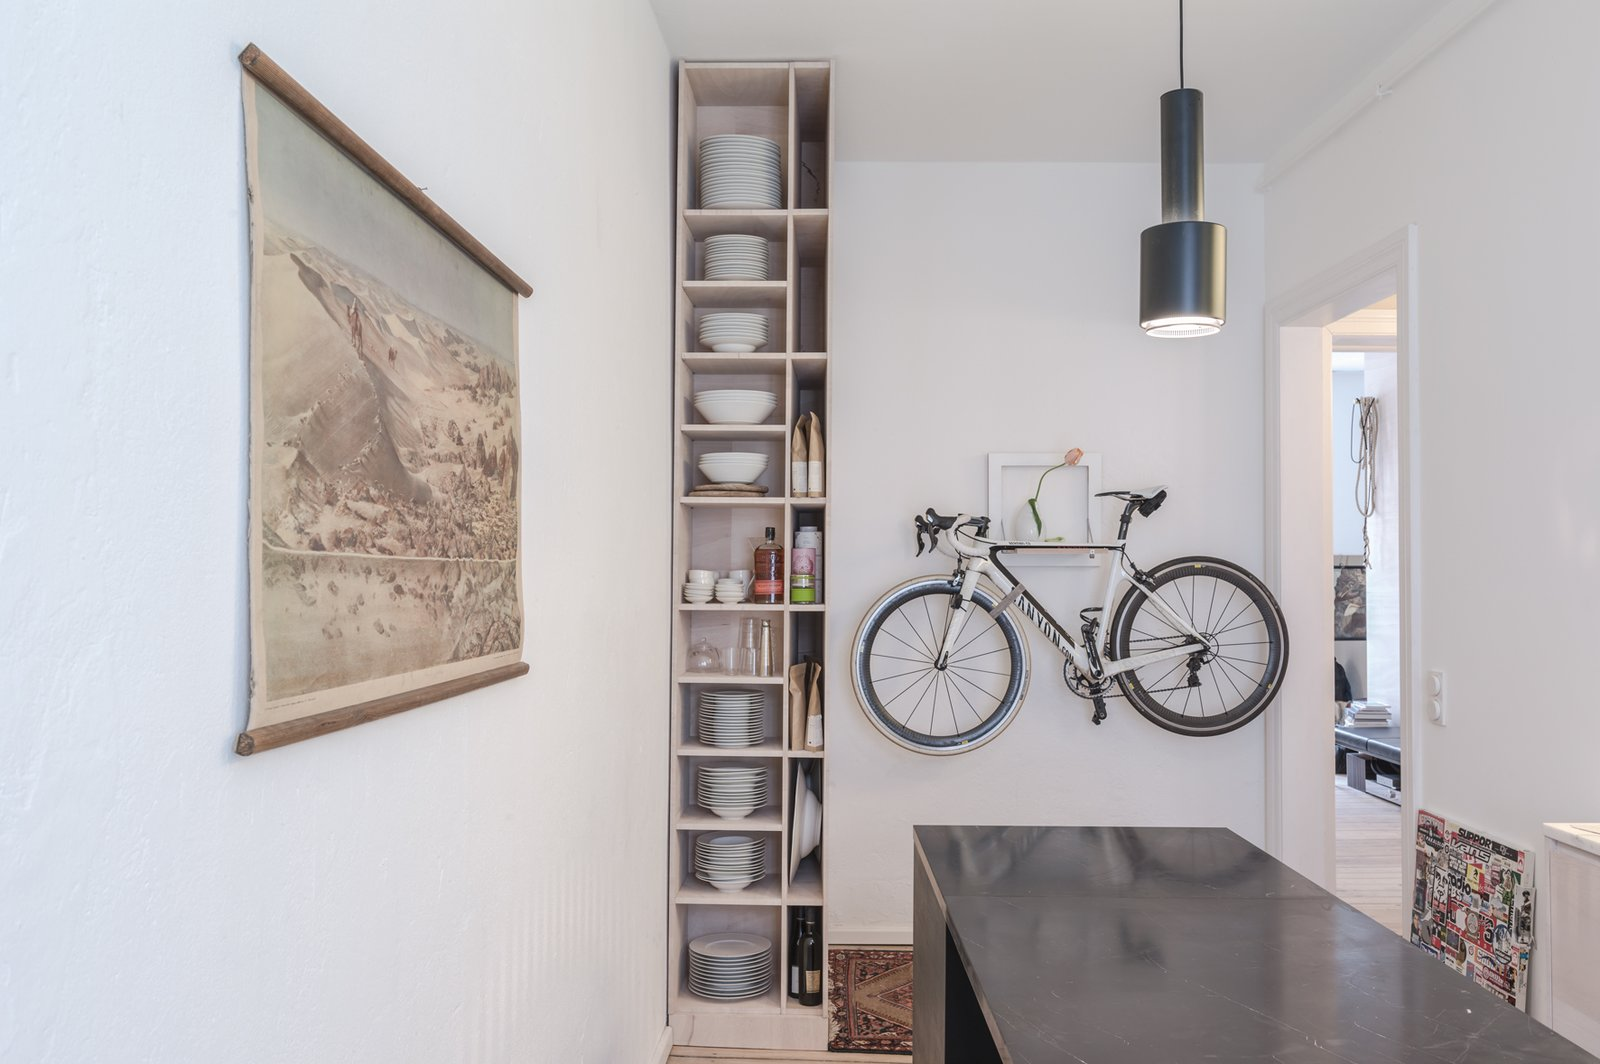 Kitchen of the Freunde von Freunden X Vitra Apartment  Architect Etienne Descloux adjusted the original bathroom design to provide more space for storage in the kitchen. Bike by Mikili, flowers by Marsano.  Photo by Steve Herud  Photo 7 of 9 in Freunde von Freunden and Vitra's Berlin Apartment